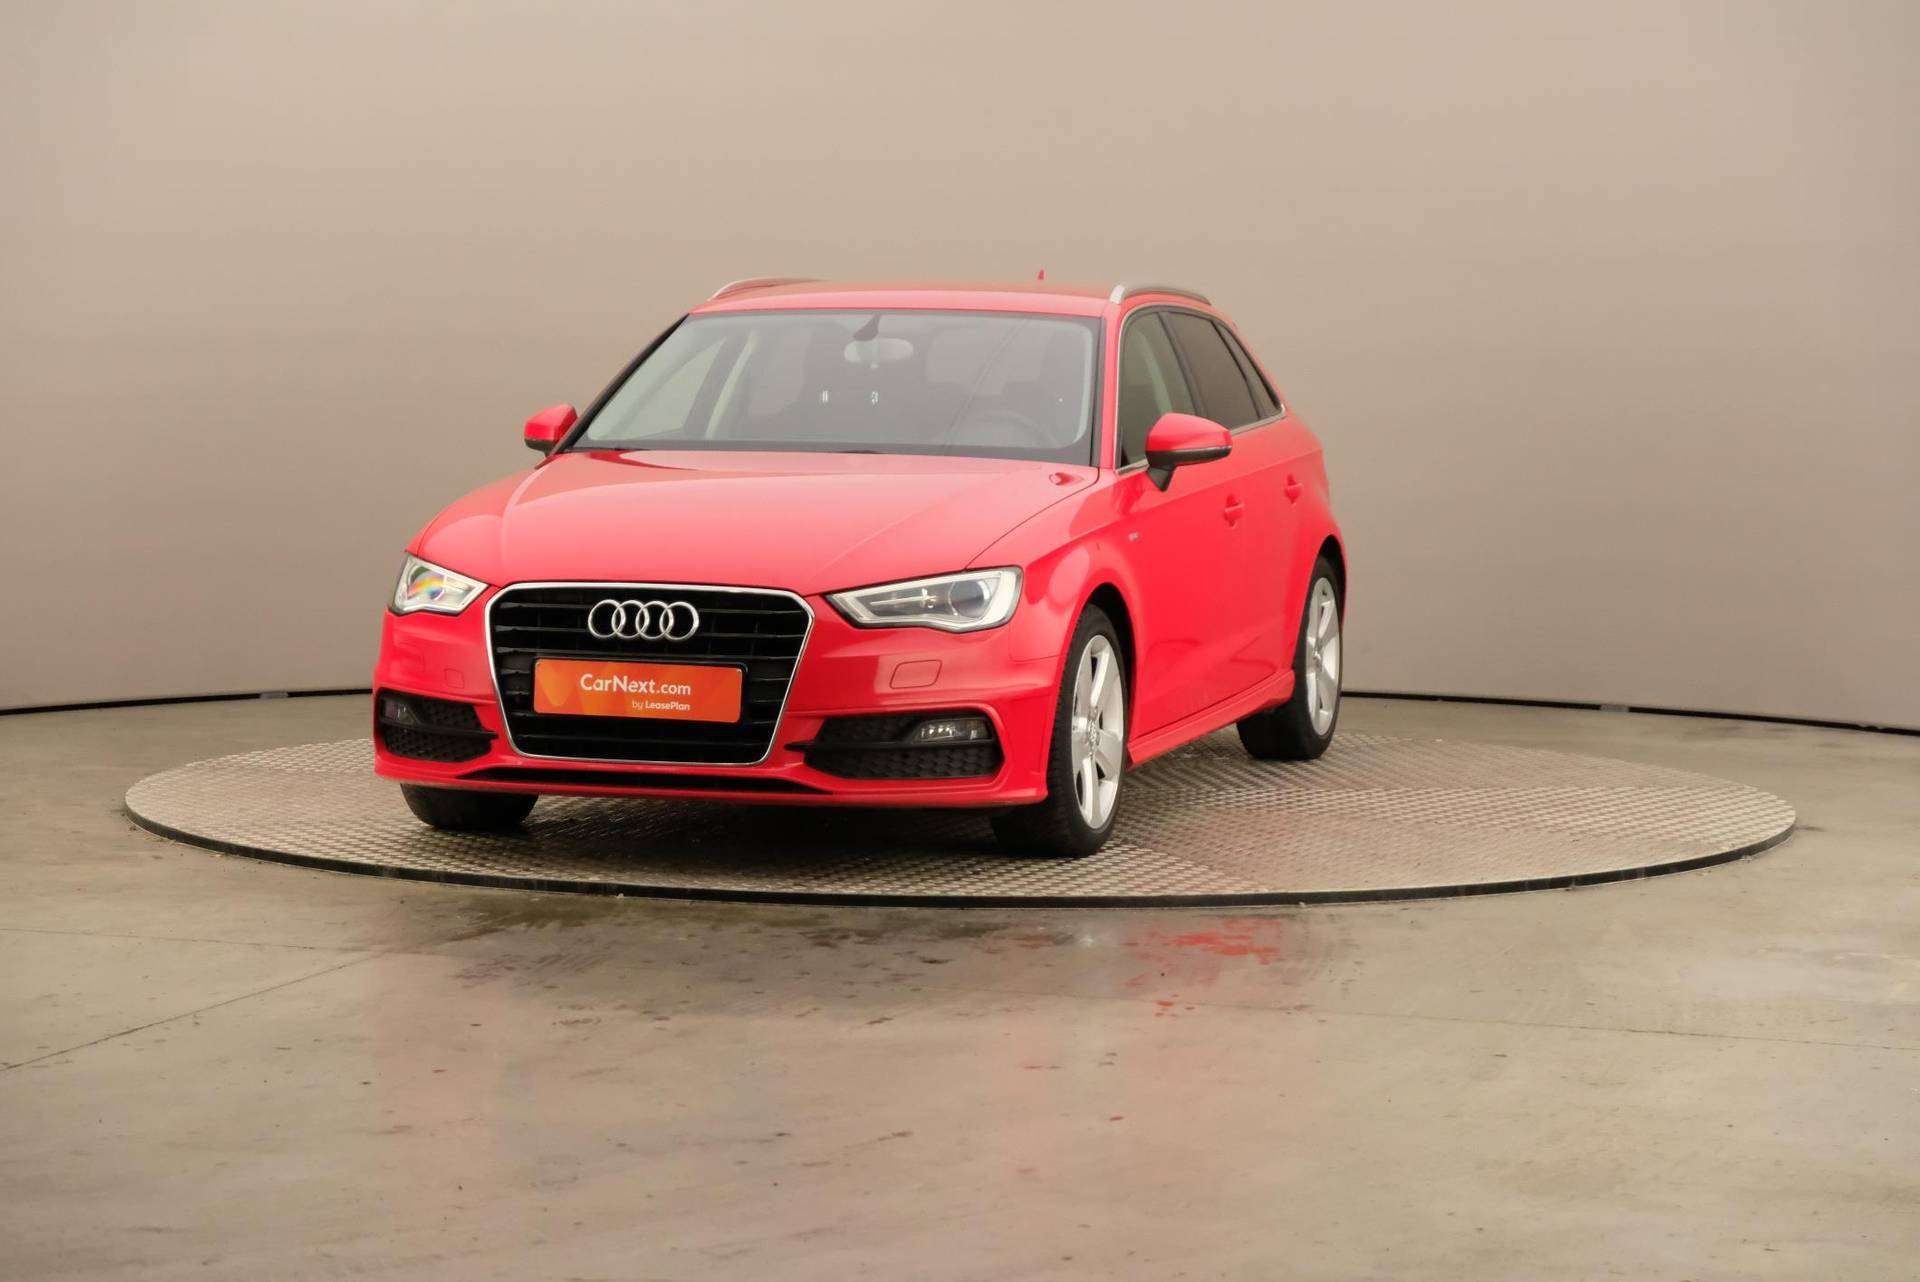 Audi A3 1.6 TDi Ambition PACK SPORT DESIGN XENON GPS PDC CRUISE CONTROL, 360-image33